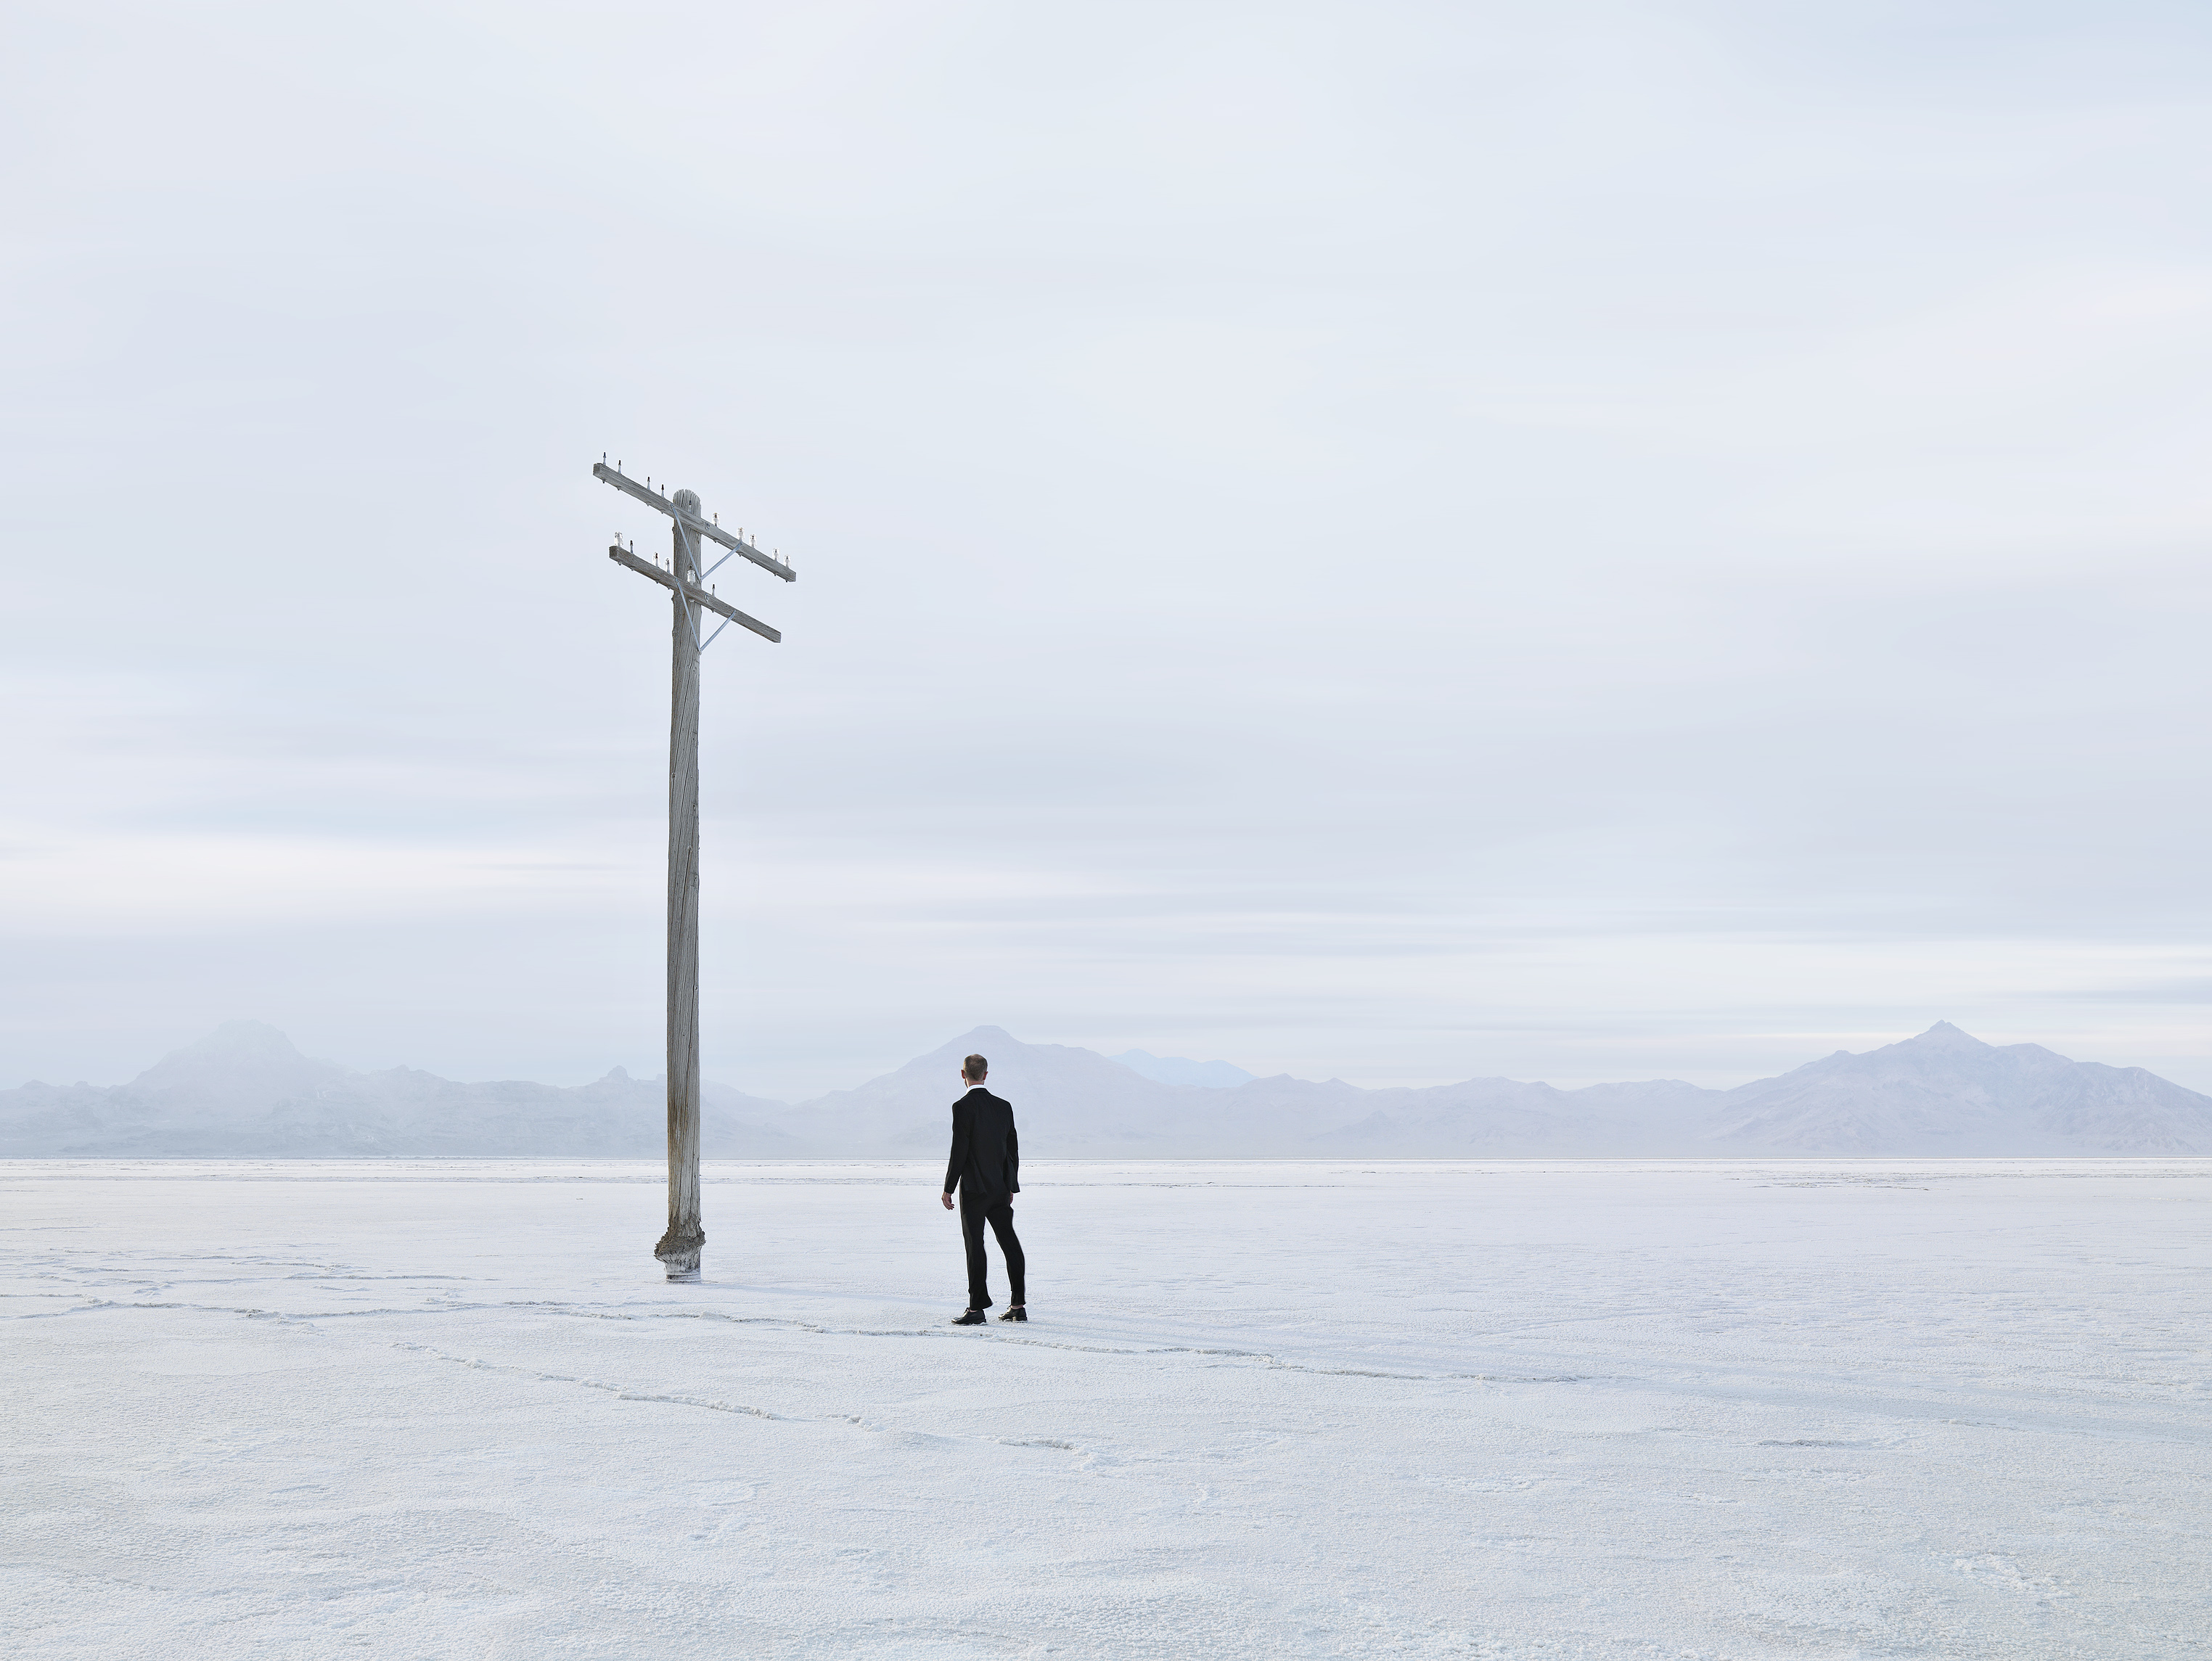 Man and Pole in Salt Flats